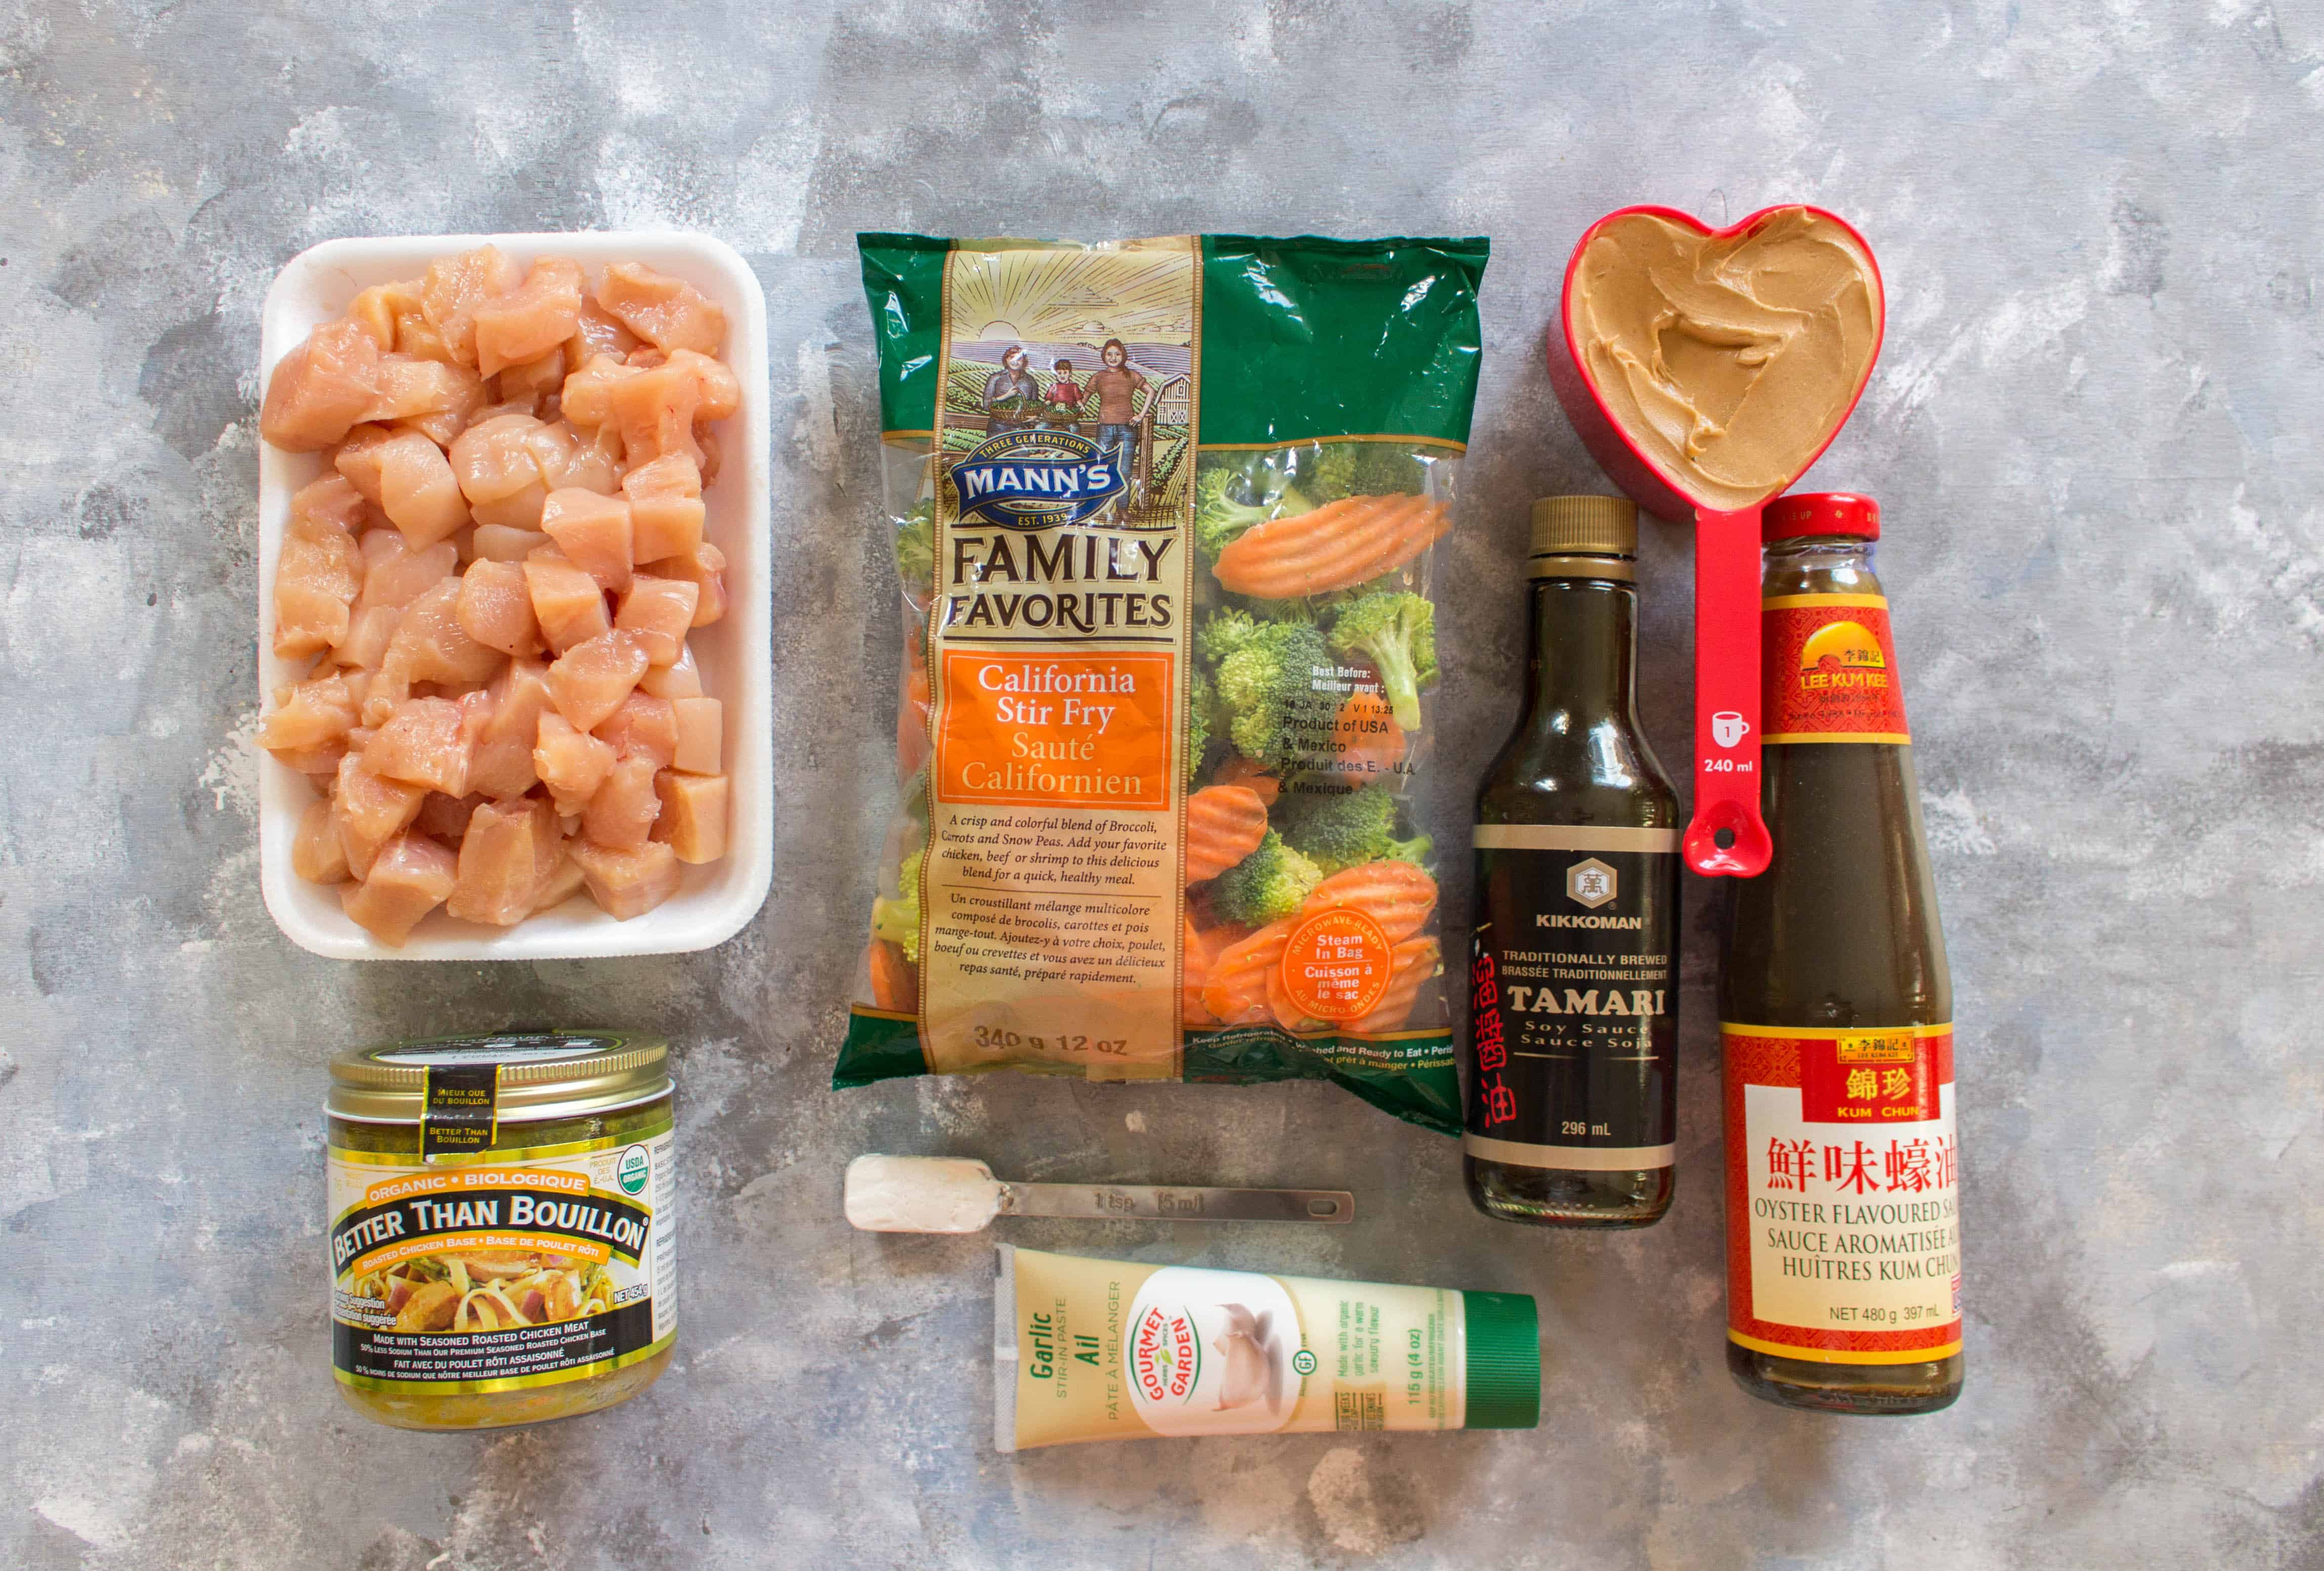 Craving a delicious satay stir fry from your local take out place? Skip the take out and make your own healthy chicken and vegetable stir fry with peanut sauce. It takes less than 30 minutes and you can pack the leftovers as a work lunch!